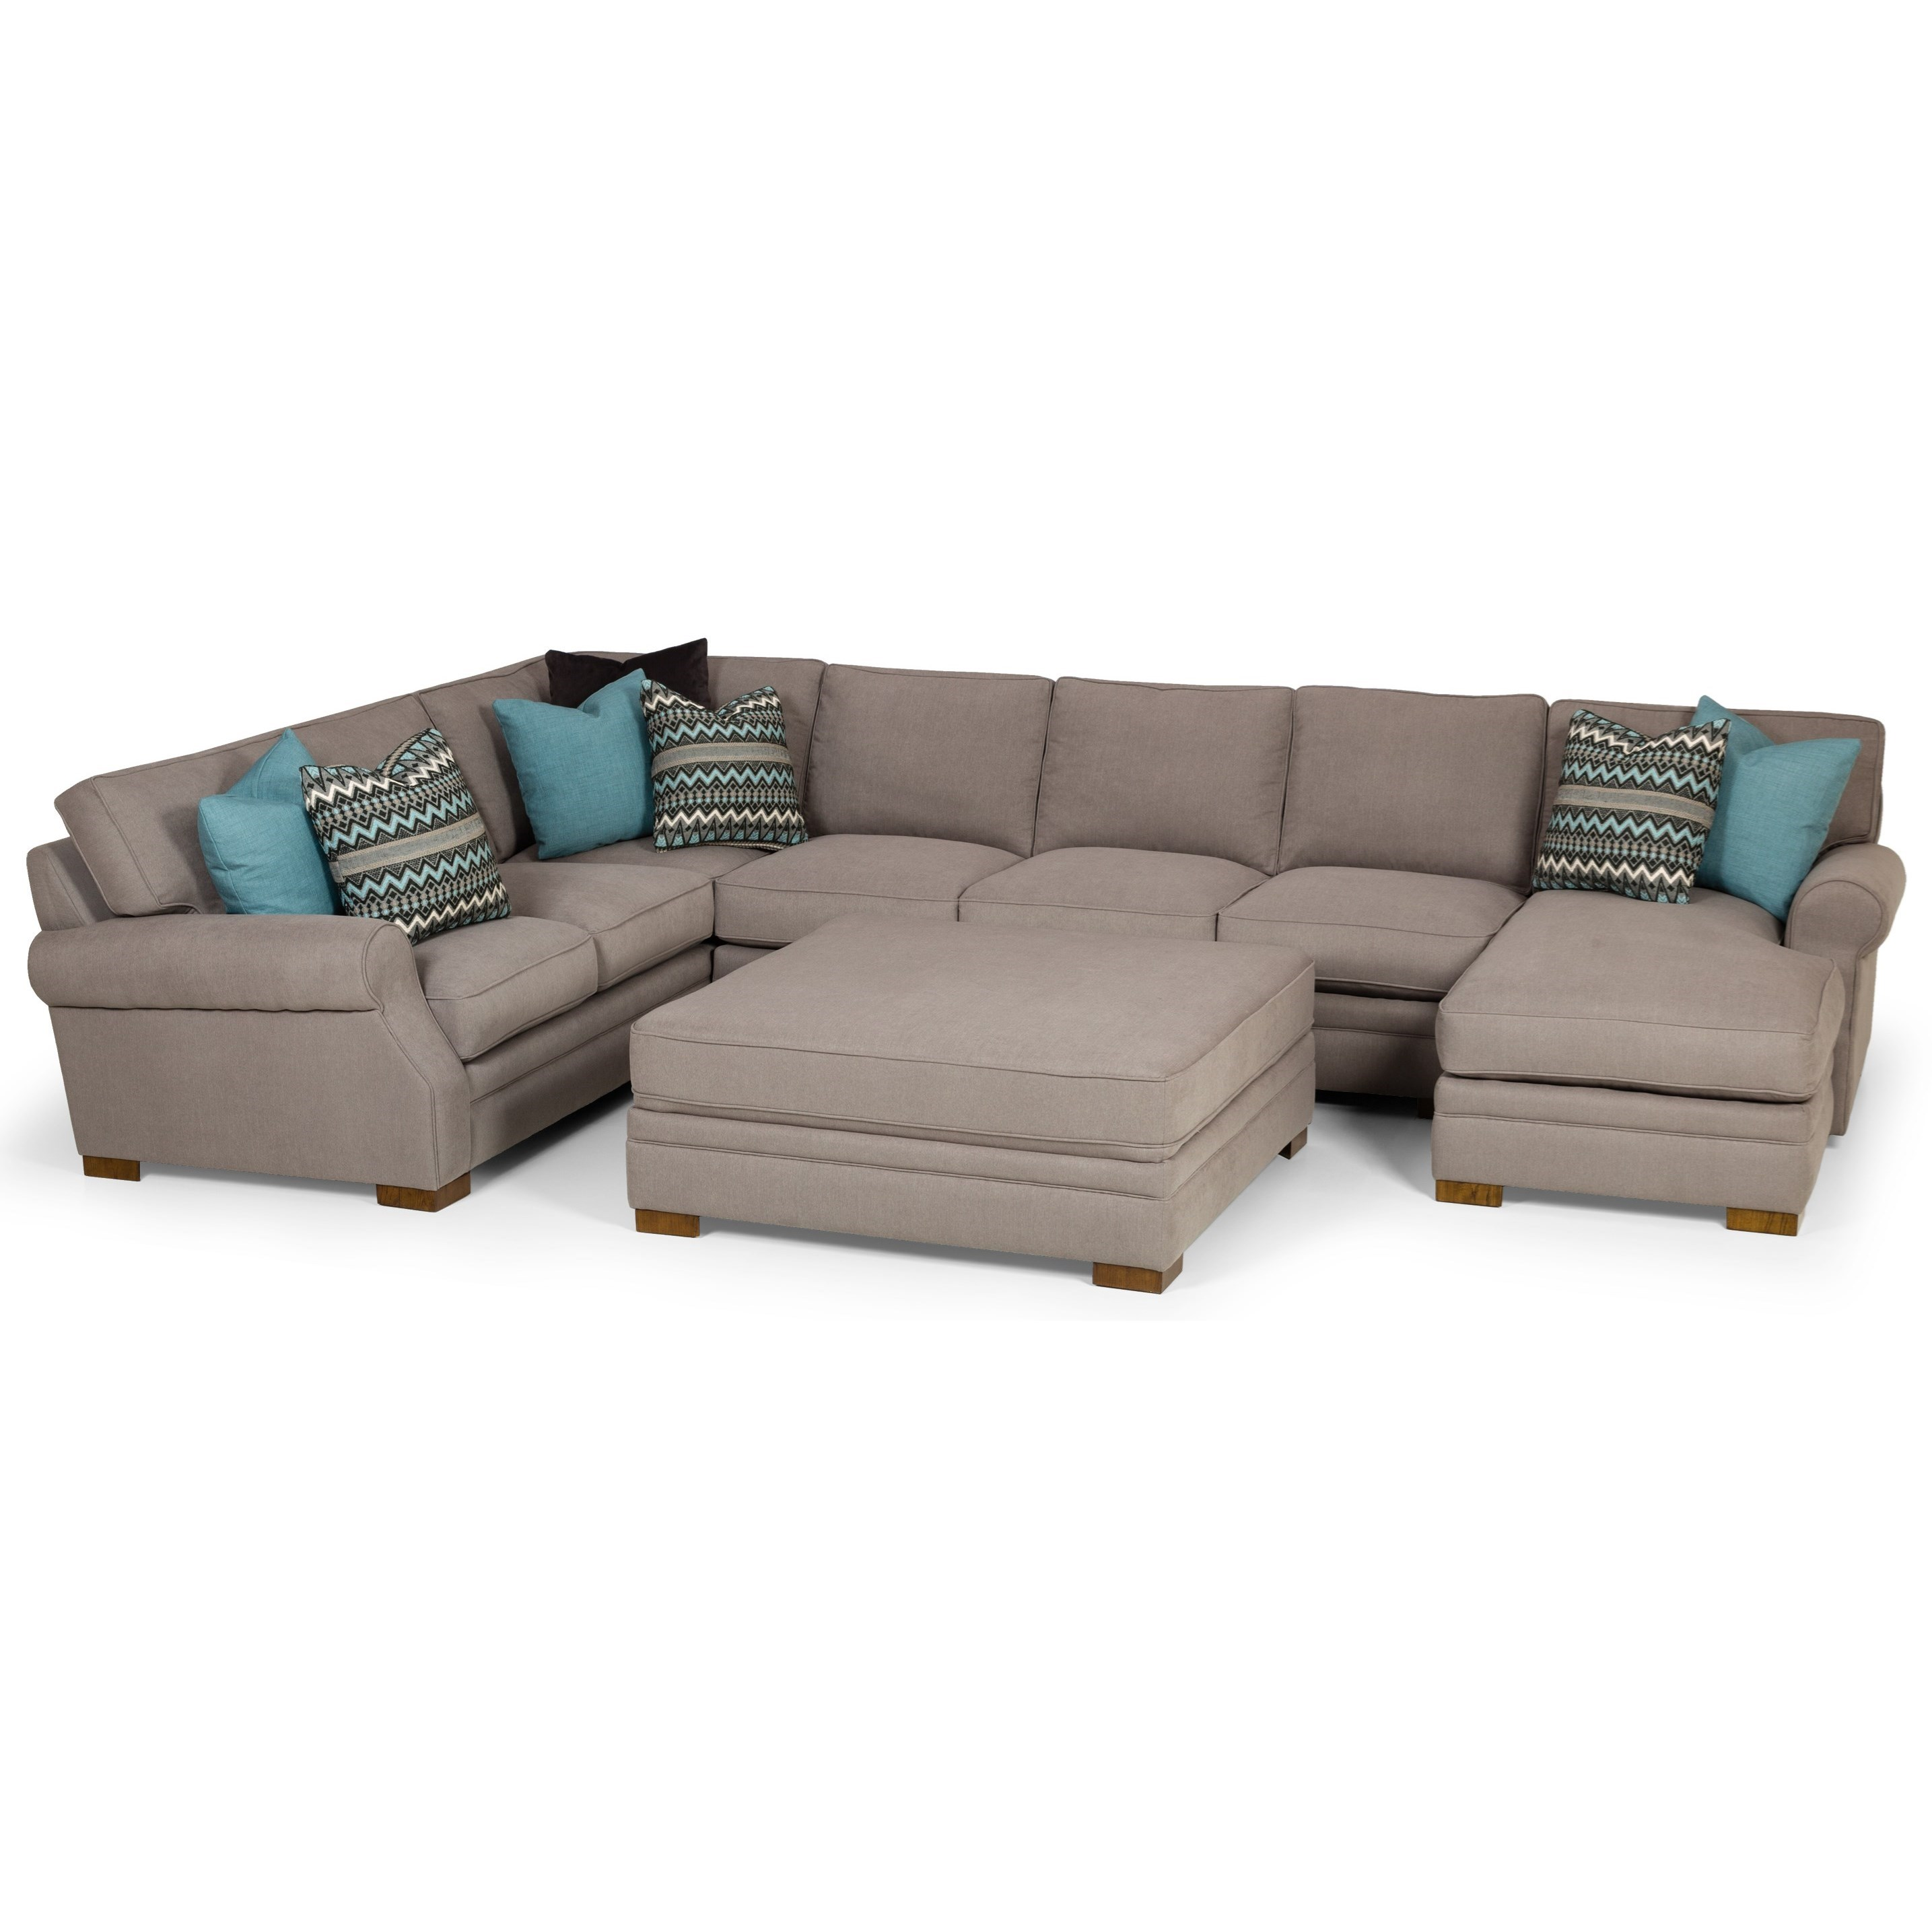 525 6-Seat Sectional Sofa w/ RAF Chaise by Stanton at Wilson's Furniture